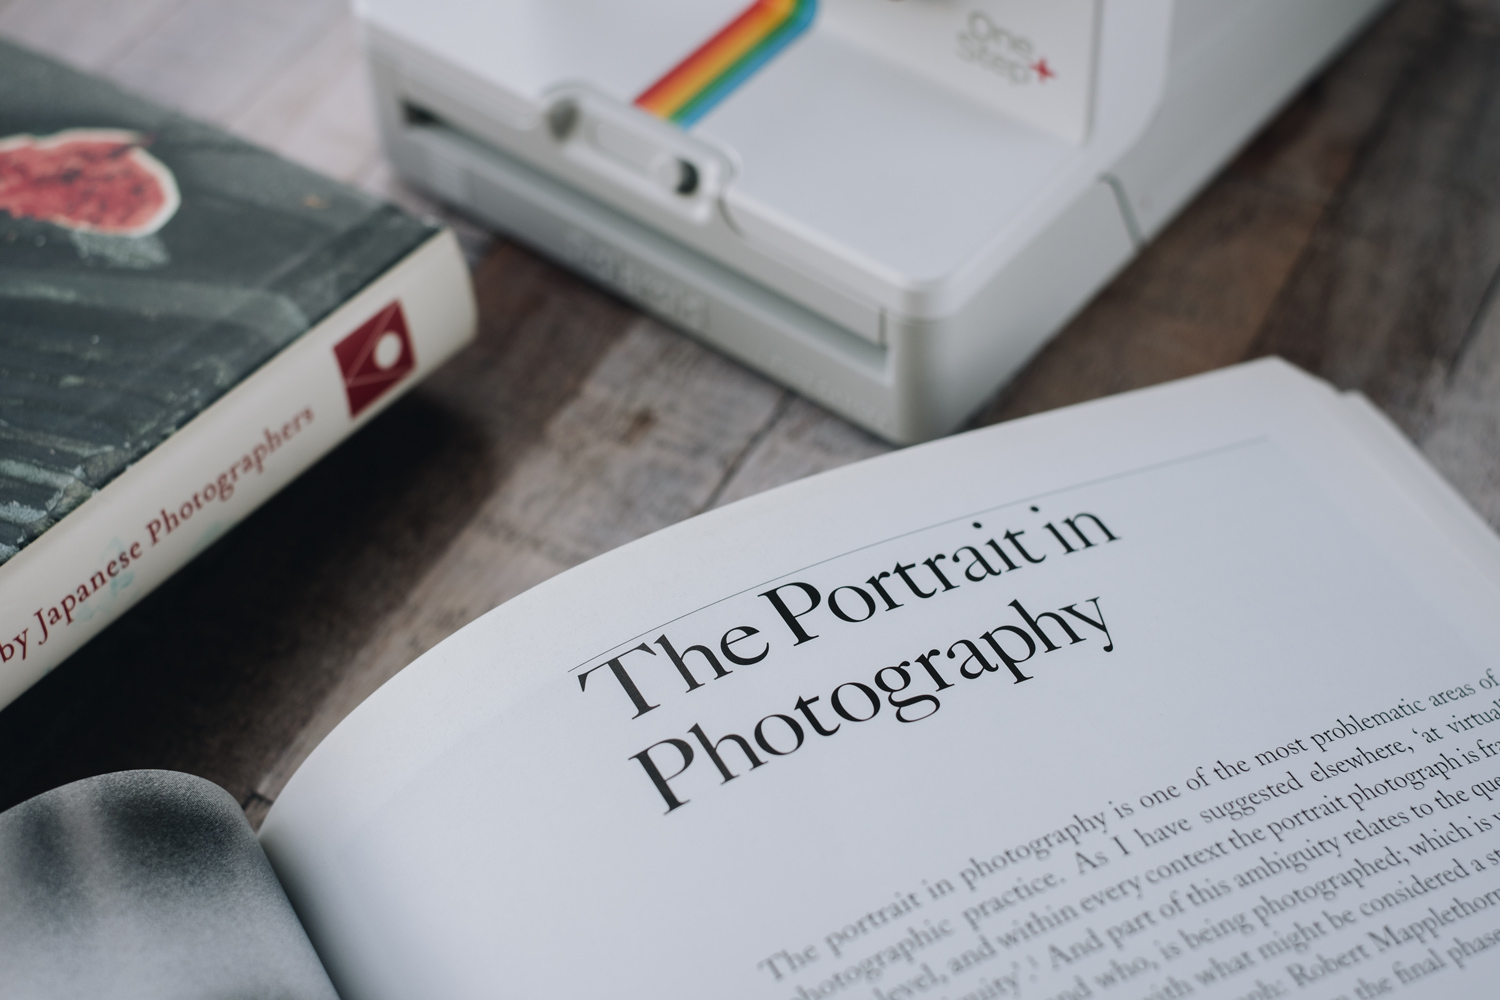 5 Different Approaches to Learning Photography